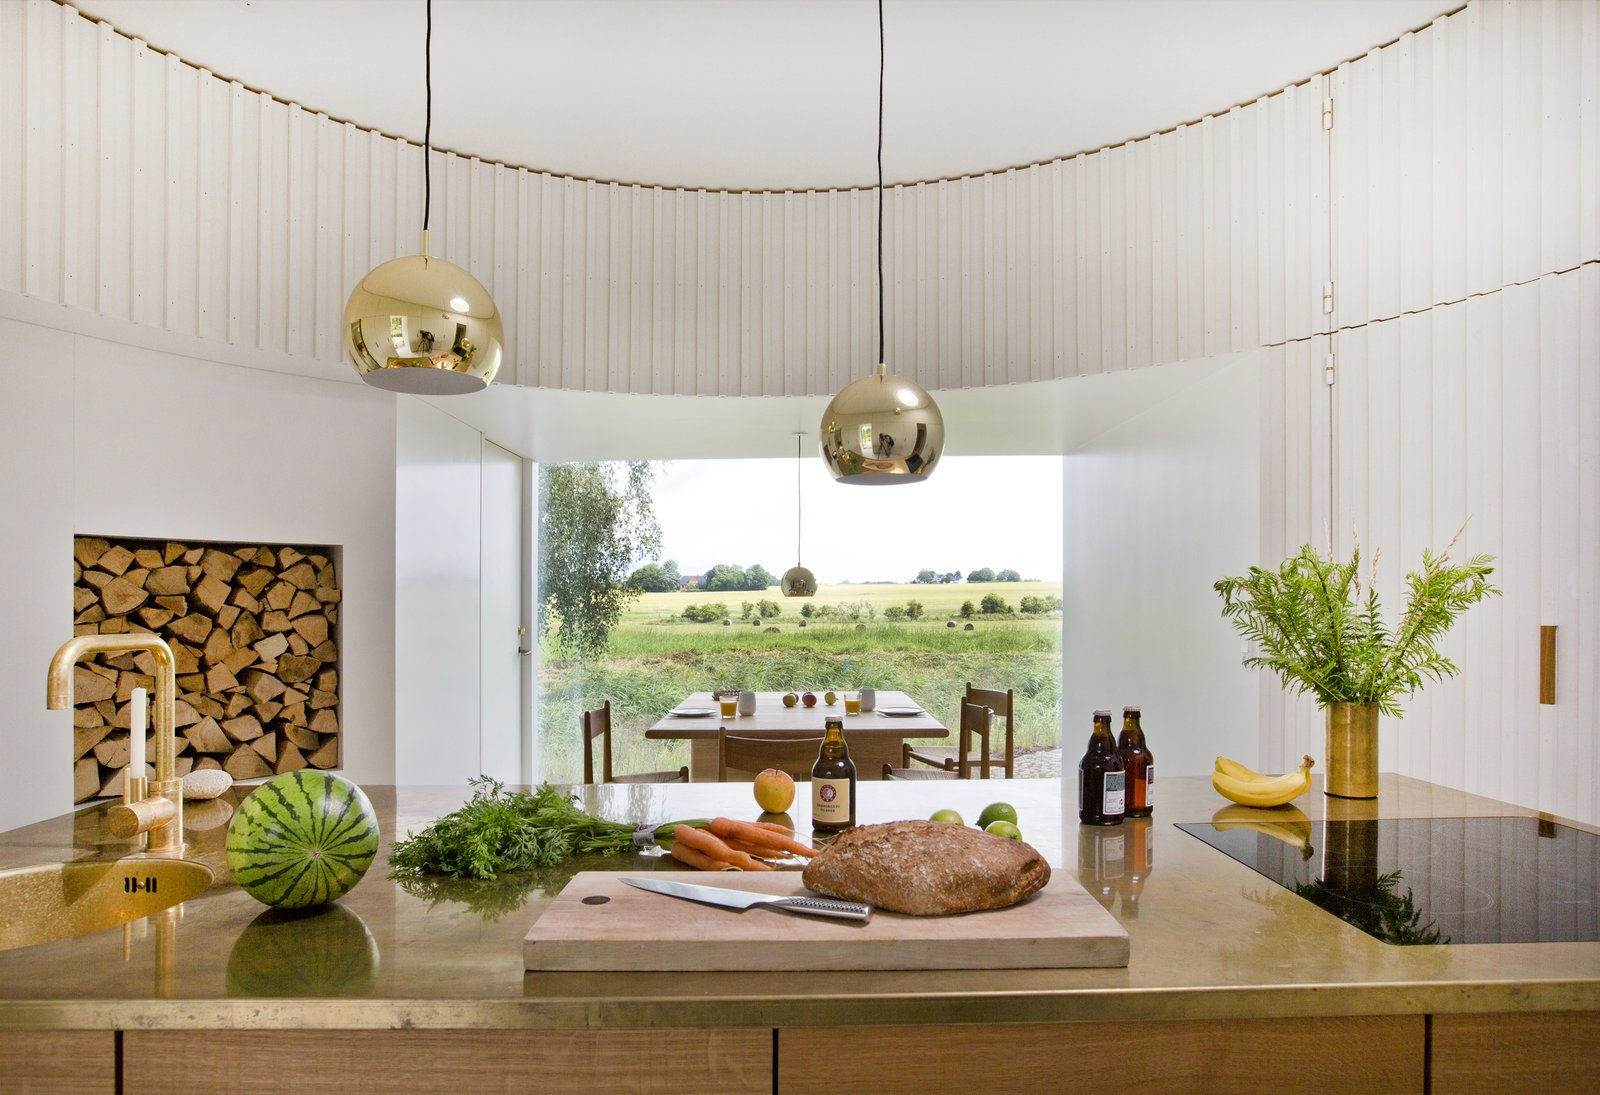 Kitchen, Metal Counter, Pendant Lighting, Wood Cabinet, Drop In Sink, and Cooktops  Photo 7 of 15 in Stay in This Danish Vacation Home Made Up of 9 Log-Clad Cylinders